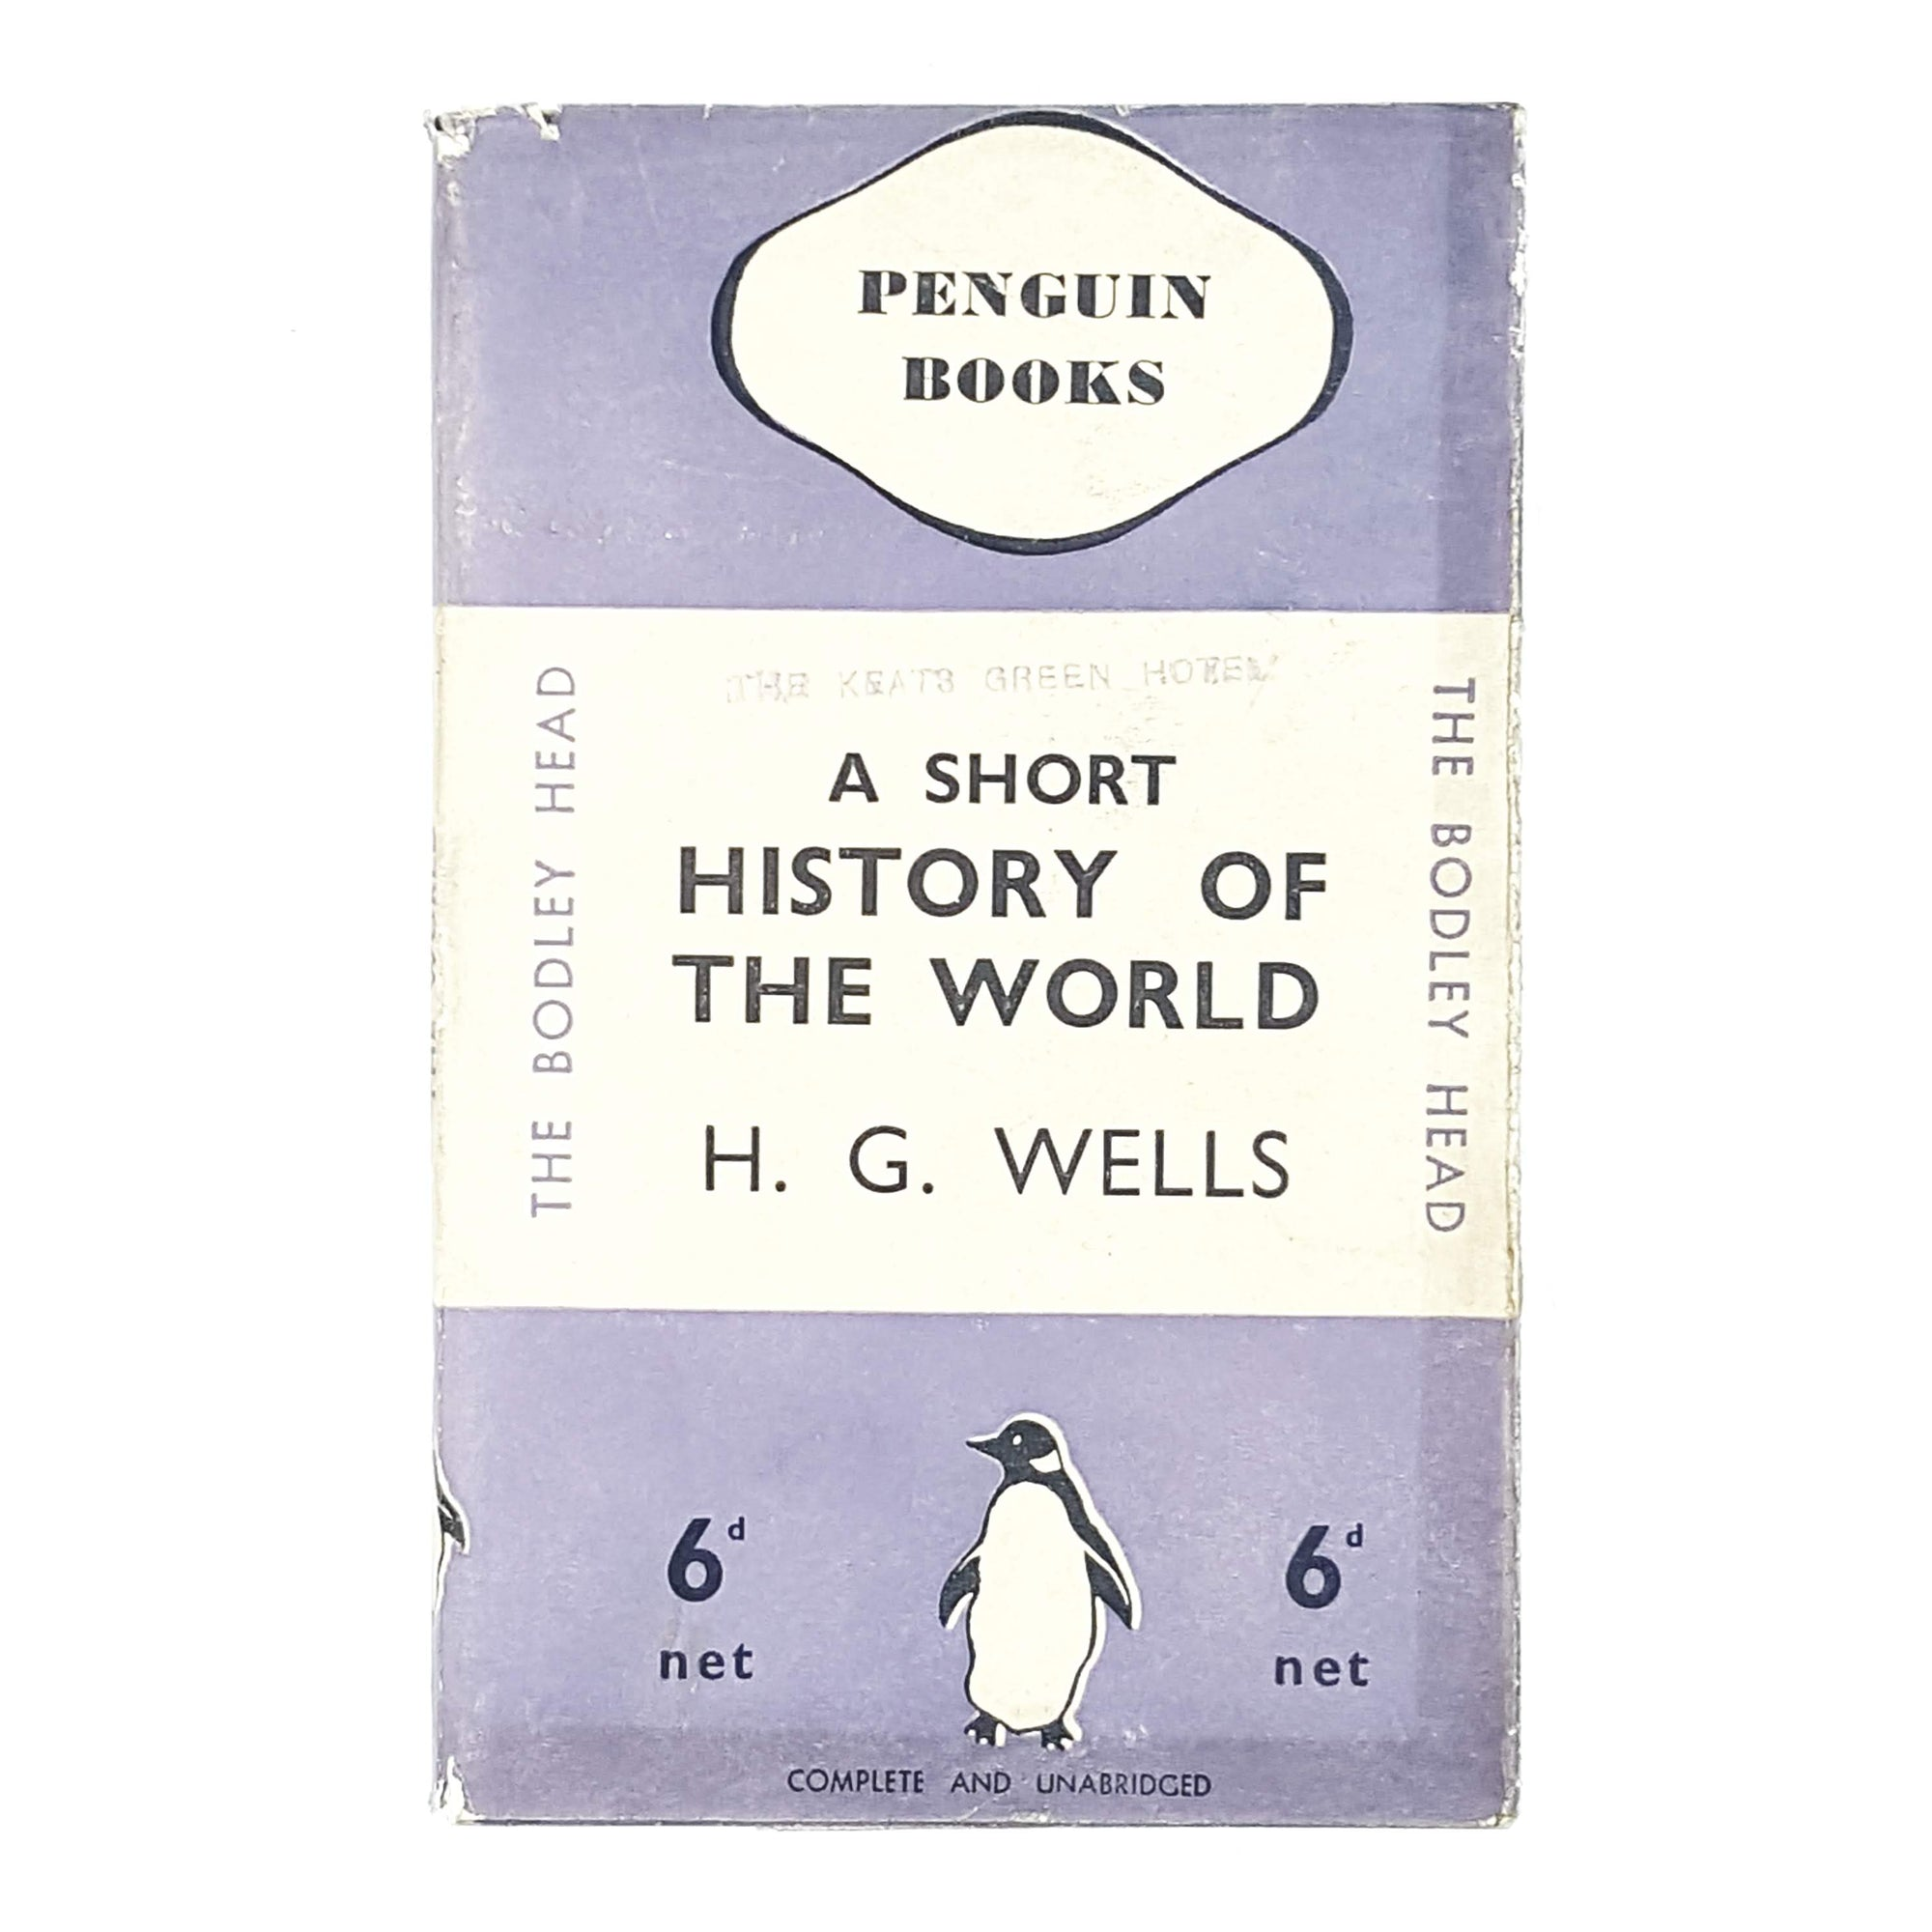 H. G. Wells's A Short History of the World 1936